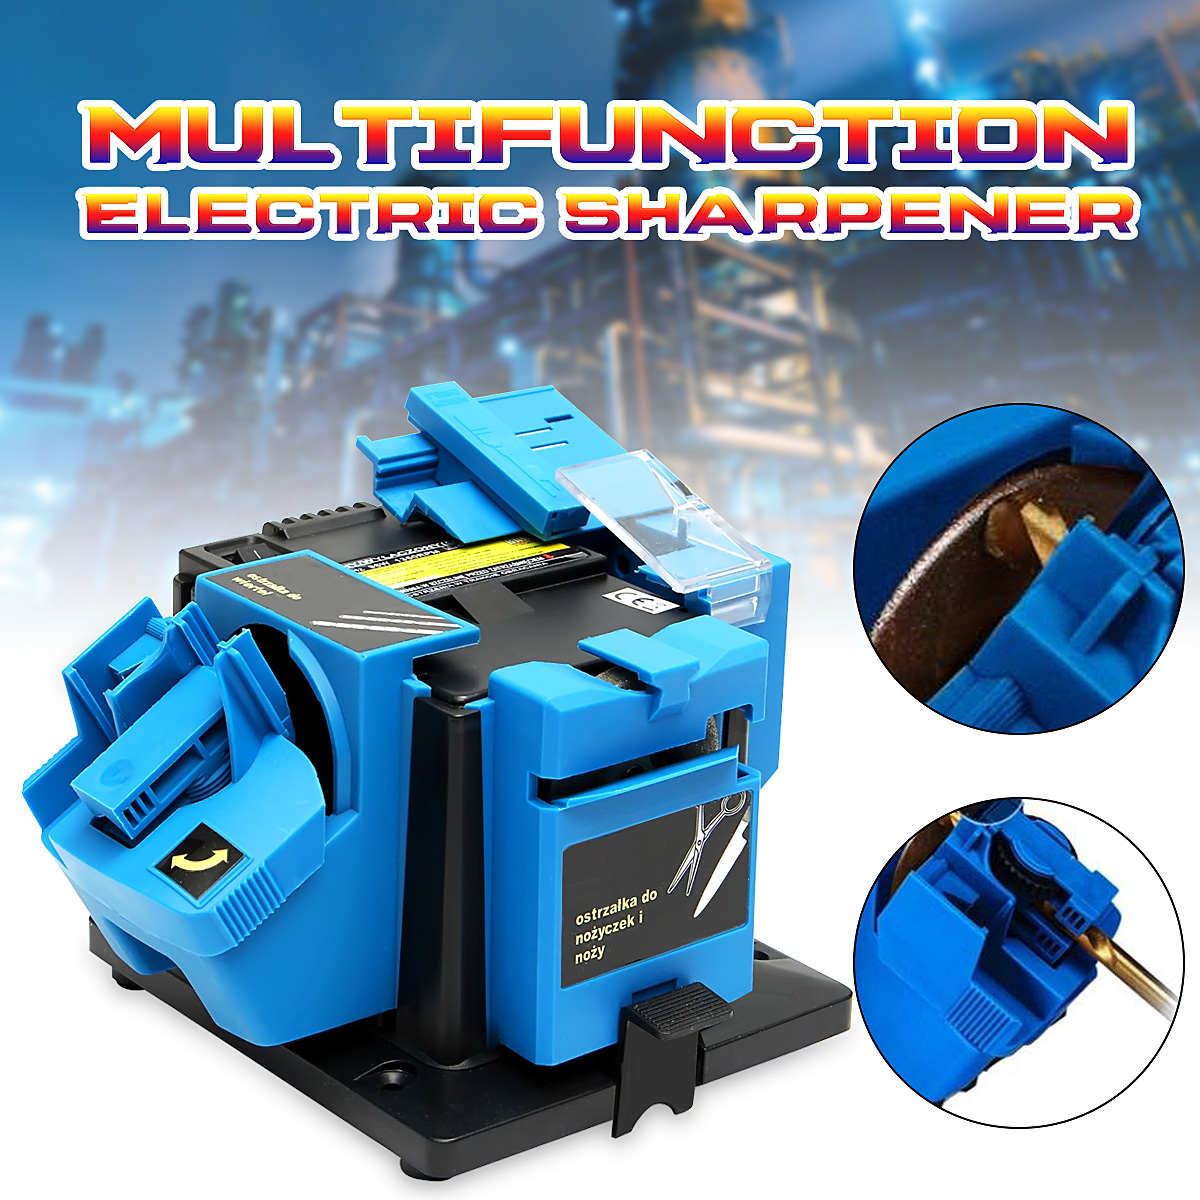 Electric Household Sharpener Tool Drill Bit Knife Scissor Sharpener Grinder 96w 220V Electric Grinder Plane Sharpener 3 12mm 220v electric multi tool grinding machine twist drill bit sharpener grinder